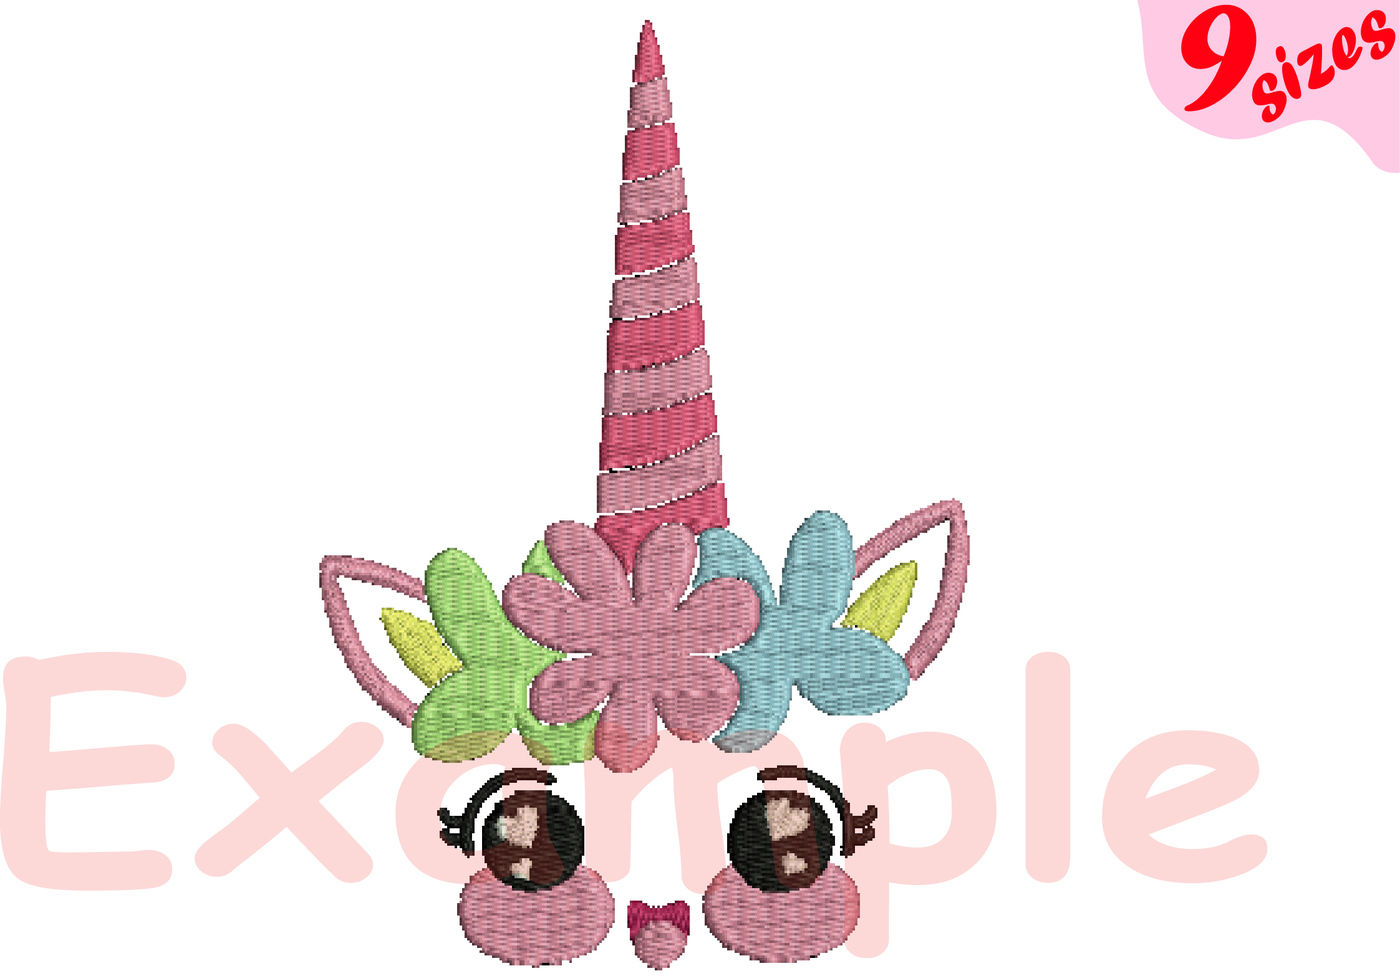 Flower Unicorn Embroidery Design Machine Instant Download